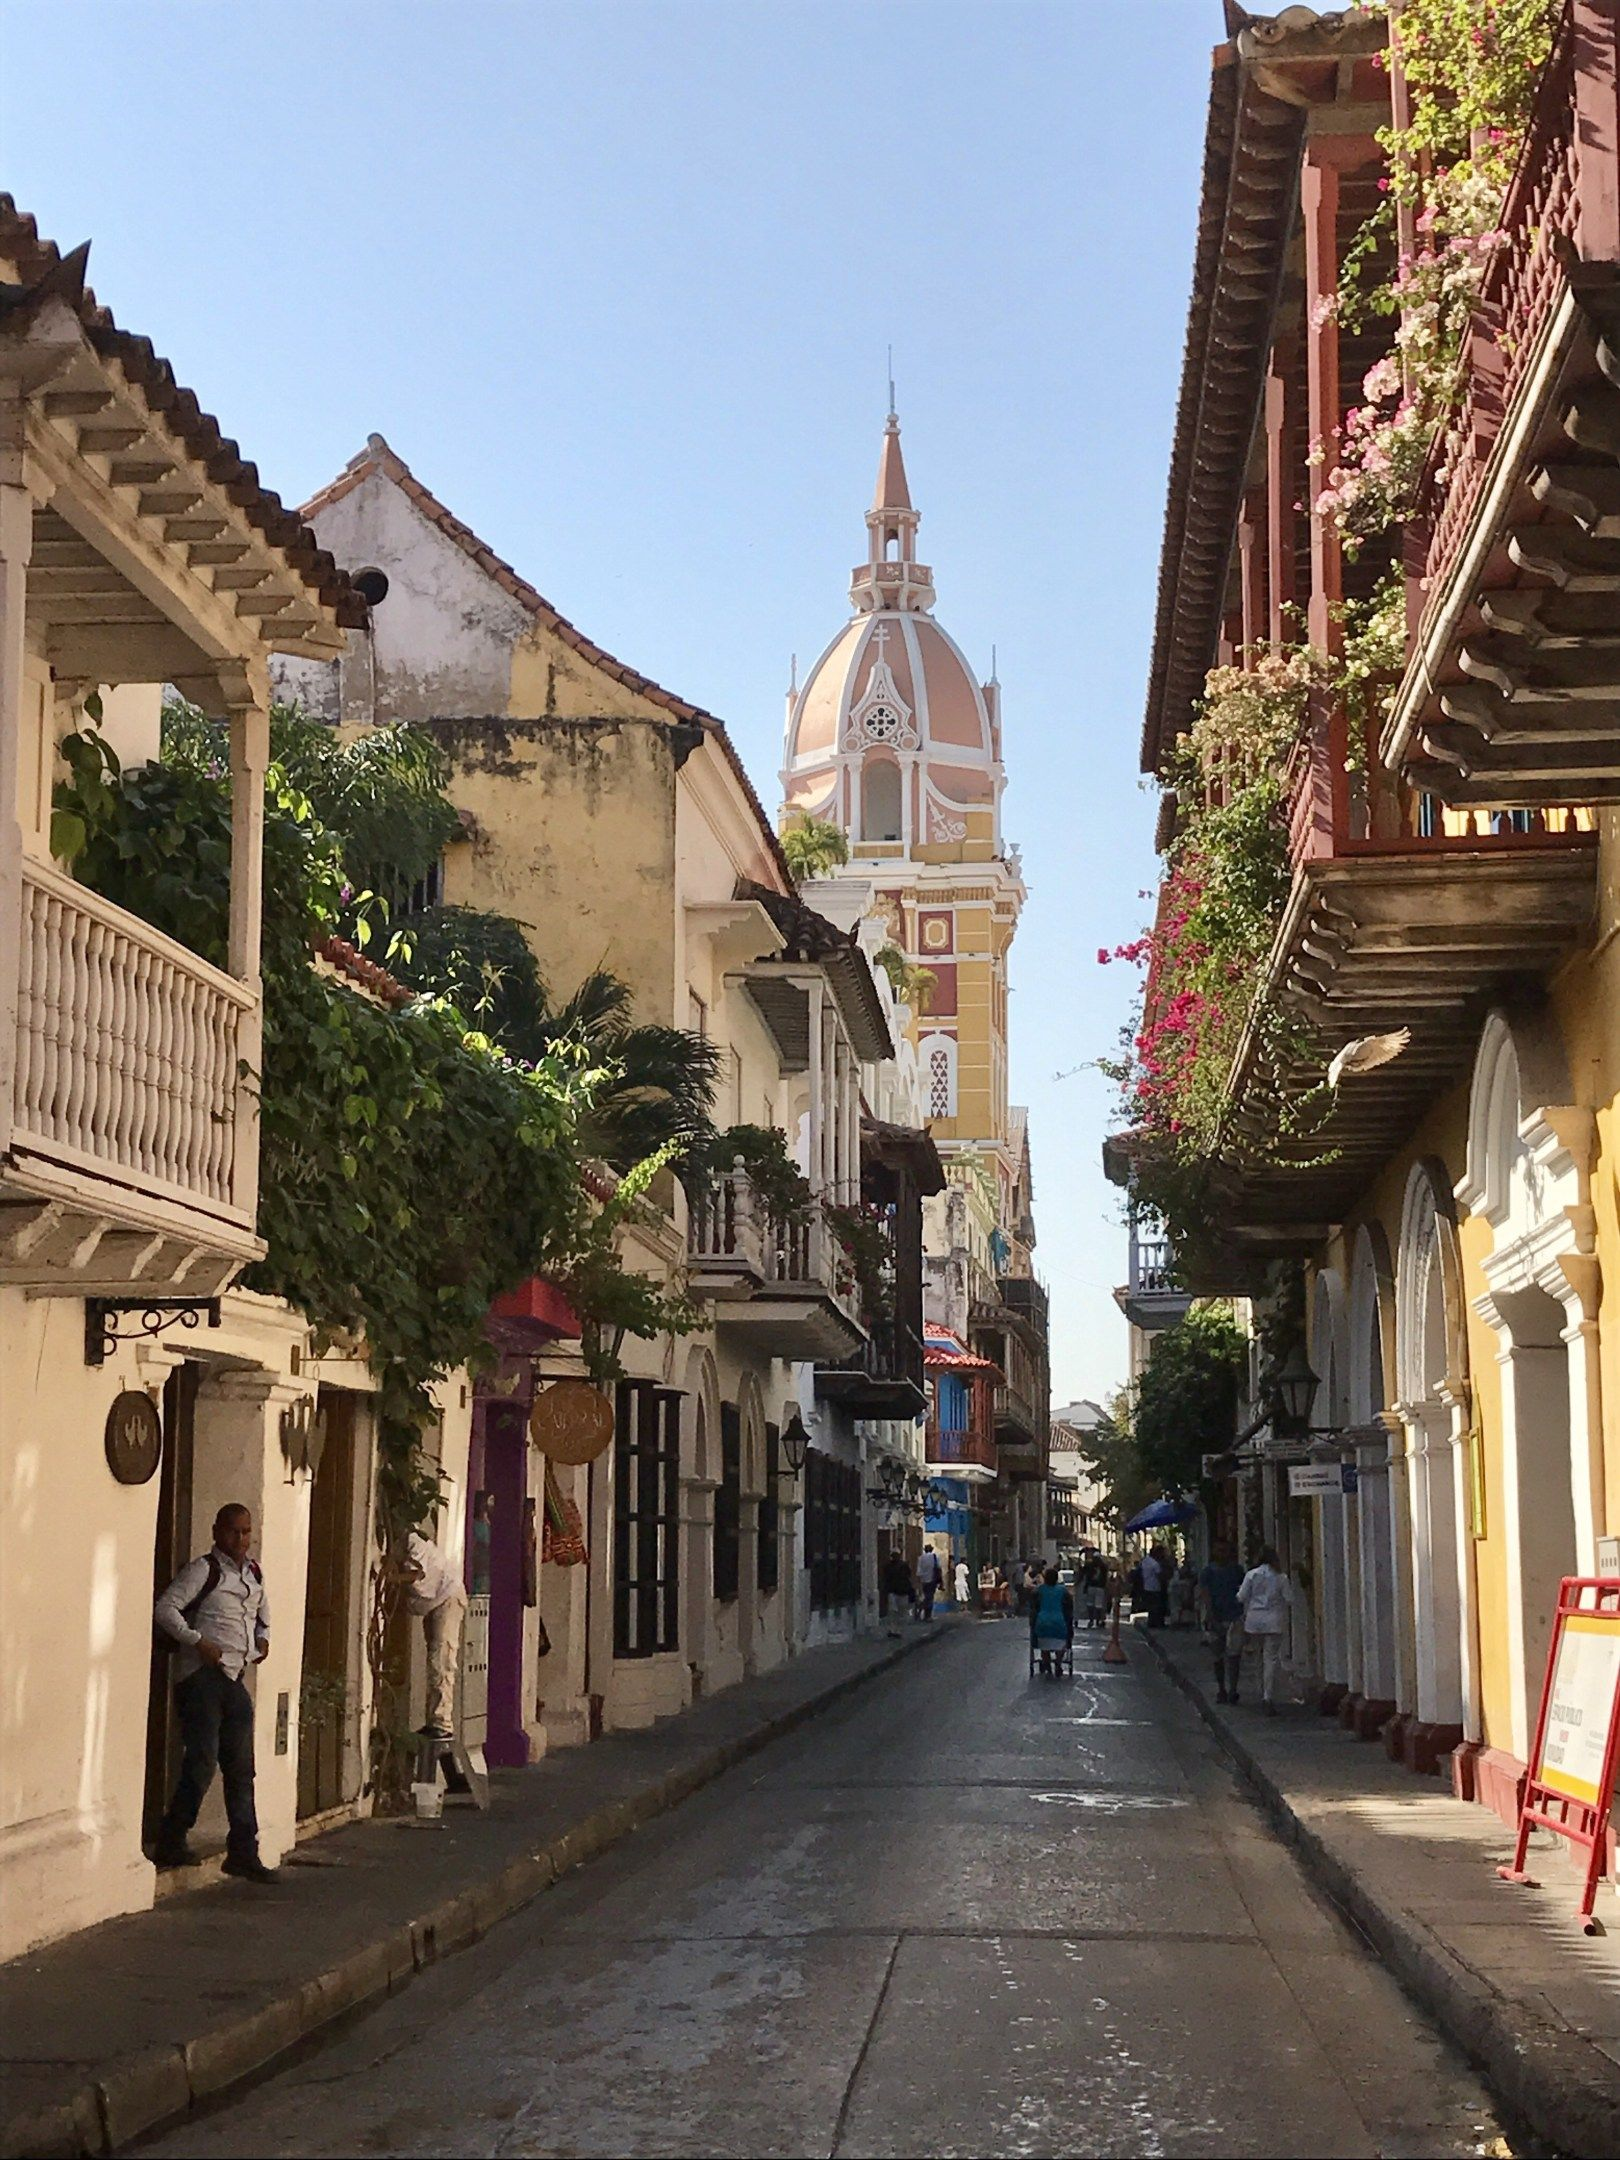 Postcard From Cartagena De Indias First Days In Colombia South America South America Travel South America South America Map